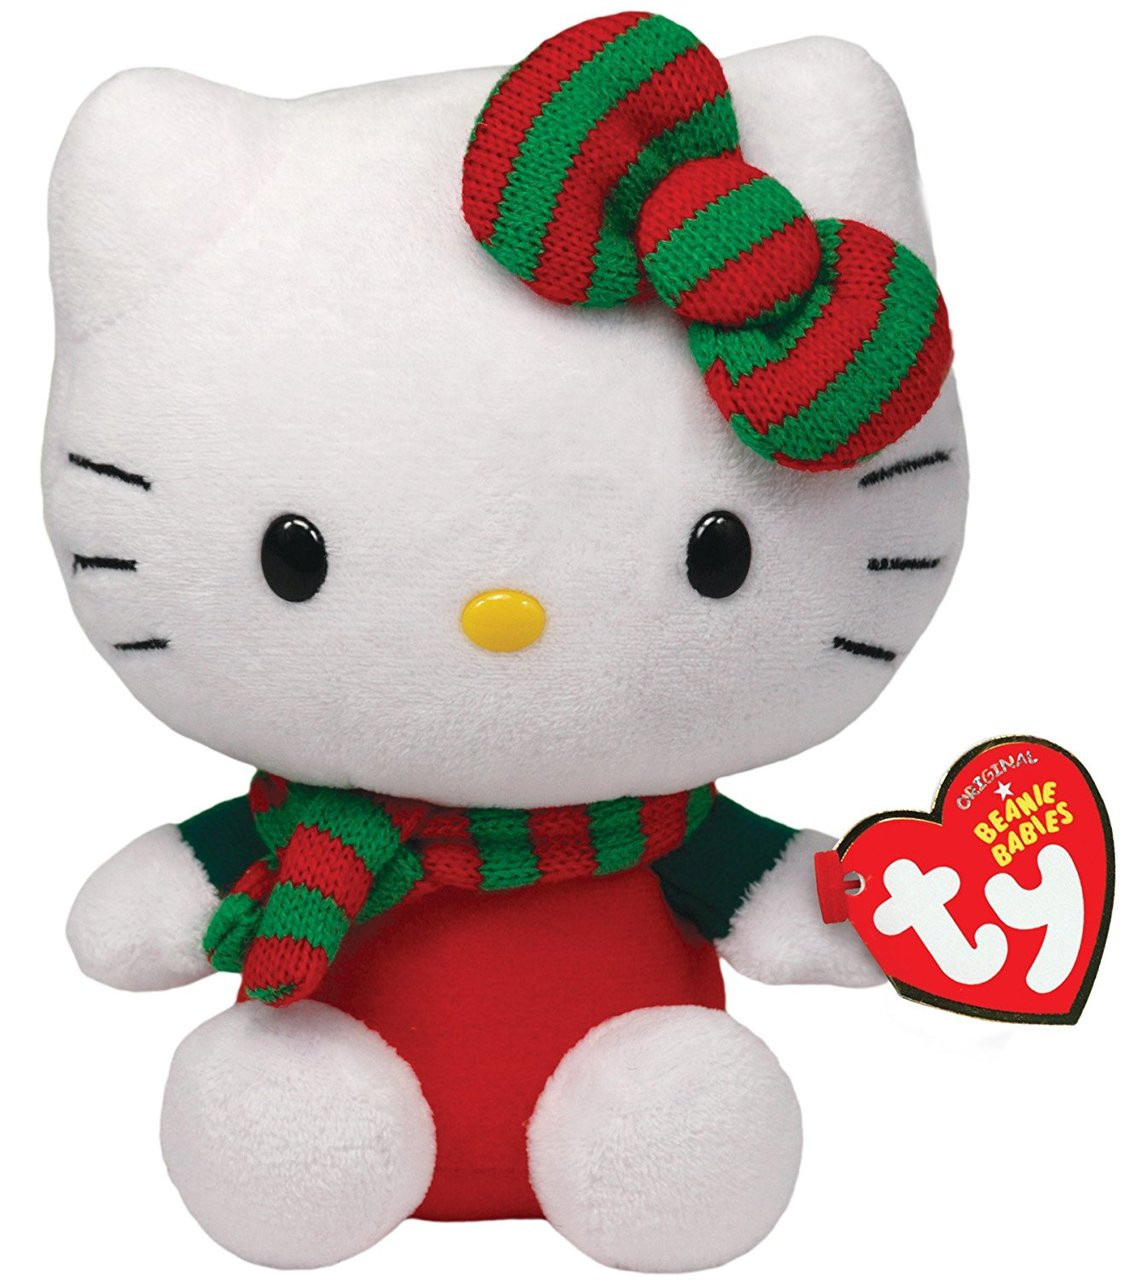 "Hello Kitty Small TY Beanie Baby 6.5"" Plush Toy - Green Red Stripped Scarf"